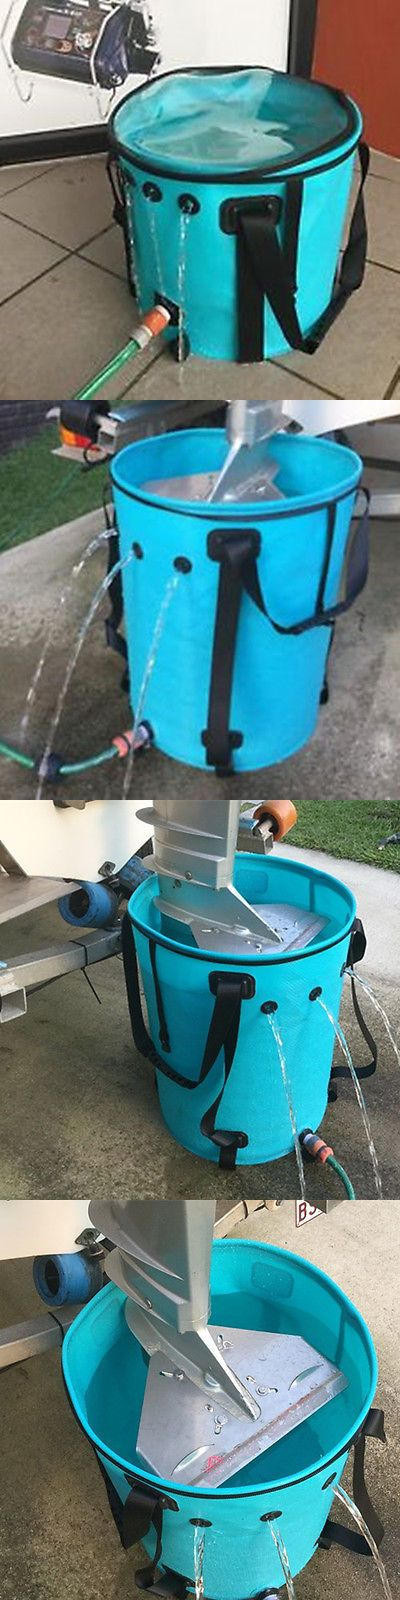 Bait Buckets 179986: Live Bait Tank Collapsable Portable,8.7-47.5 Gallon,Circulate Water By Engine -> BUY IT NOW ONLY: $179.99 on eBay!